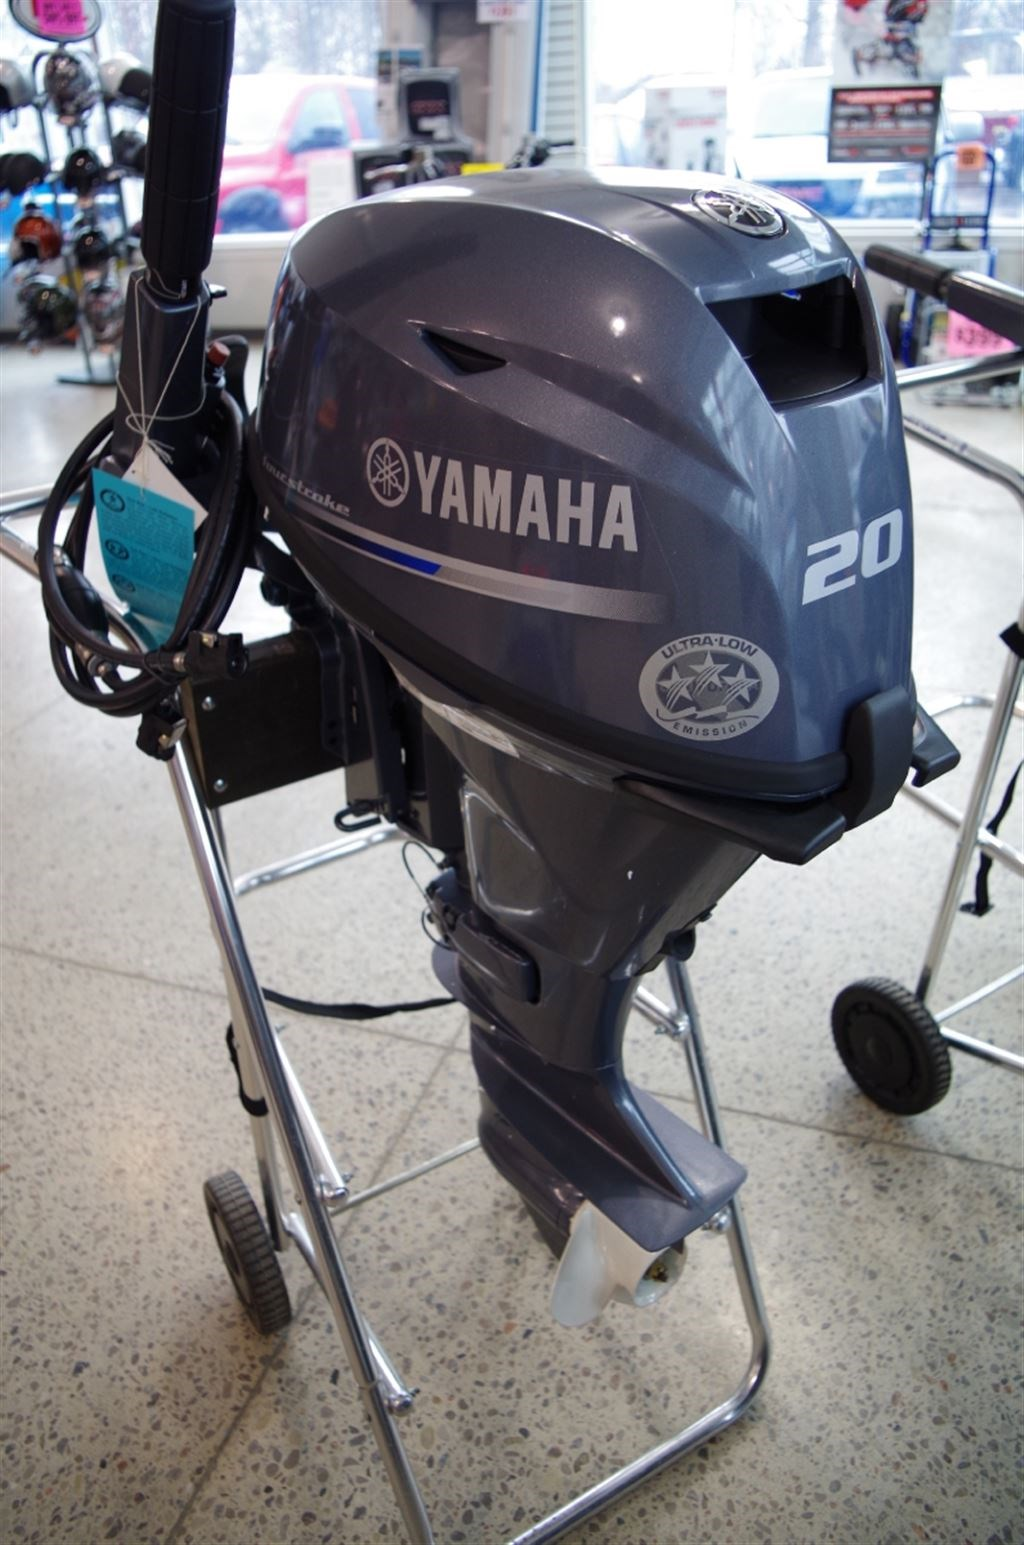 Yamaha f20 seha 2015 new outboard for sale in midland for Yamaha f6 price